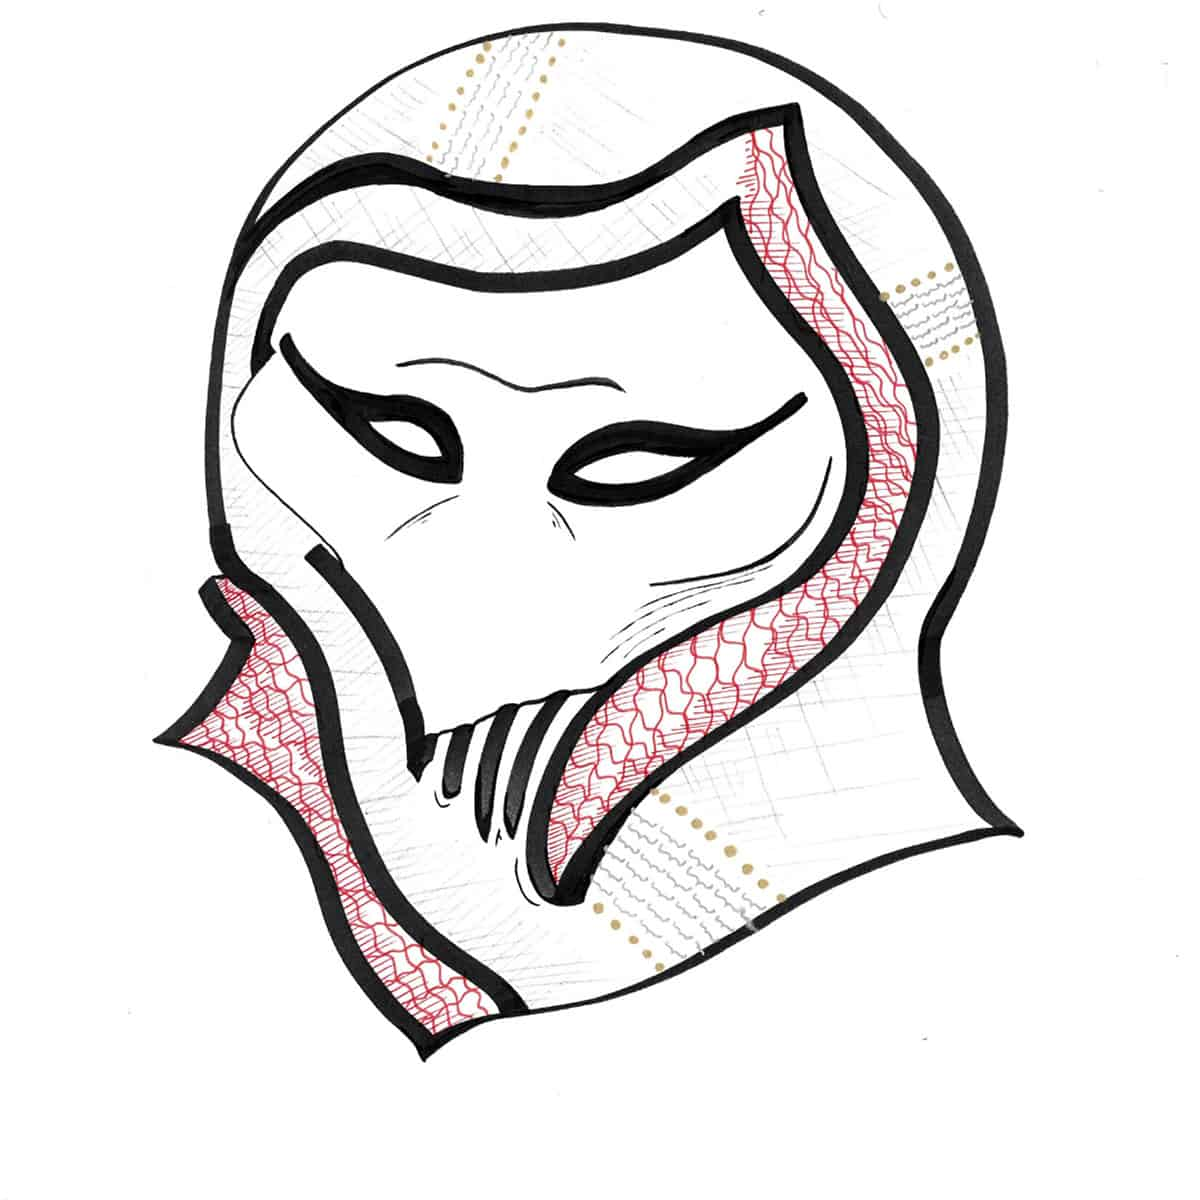 drawing of alien-like head wearing head scarf